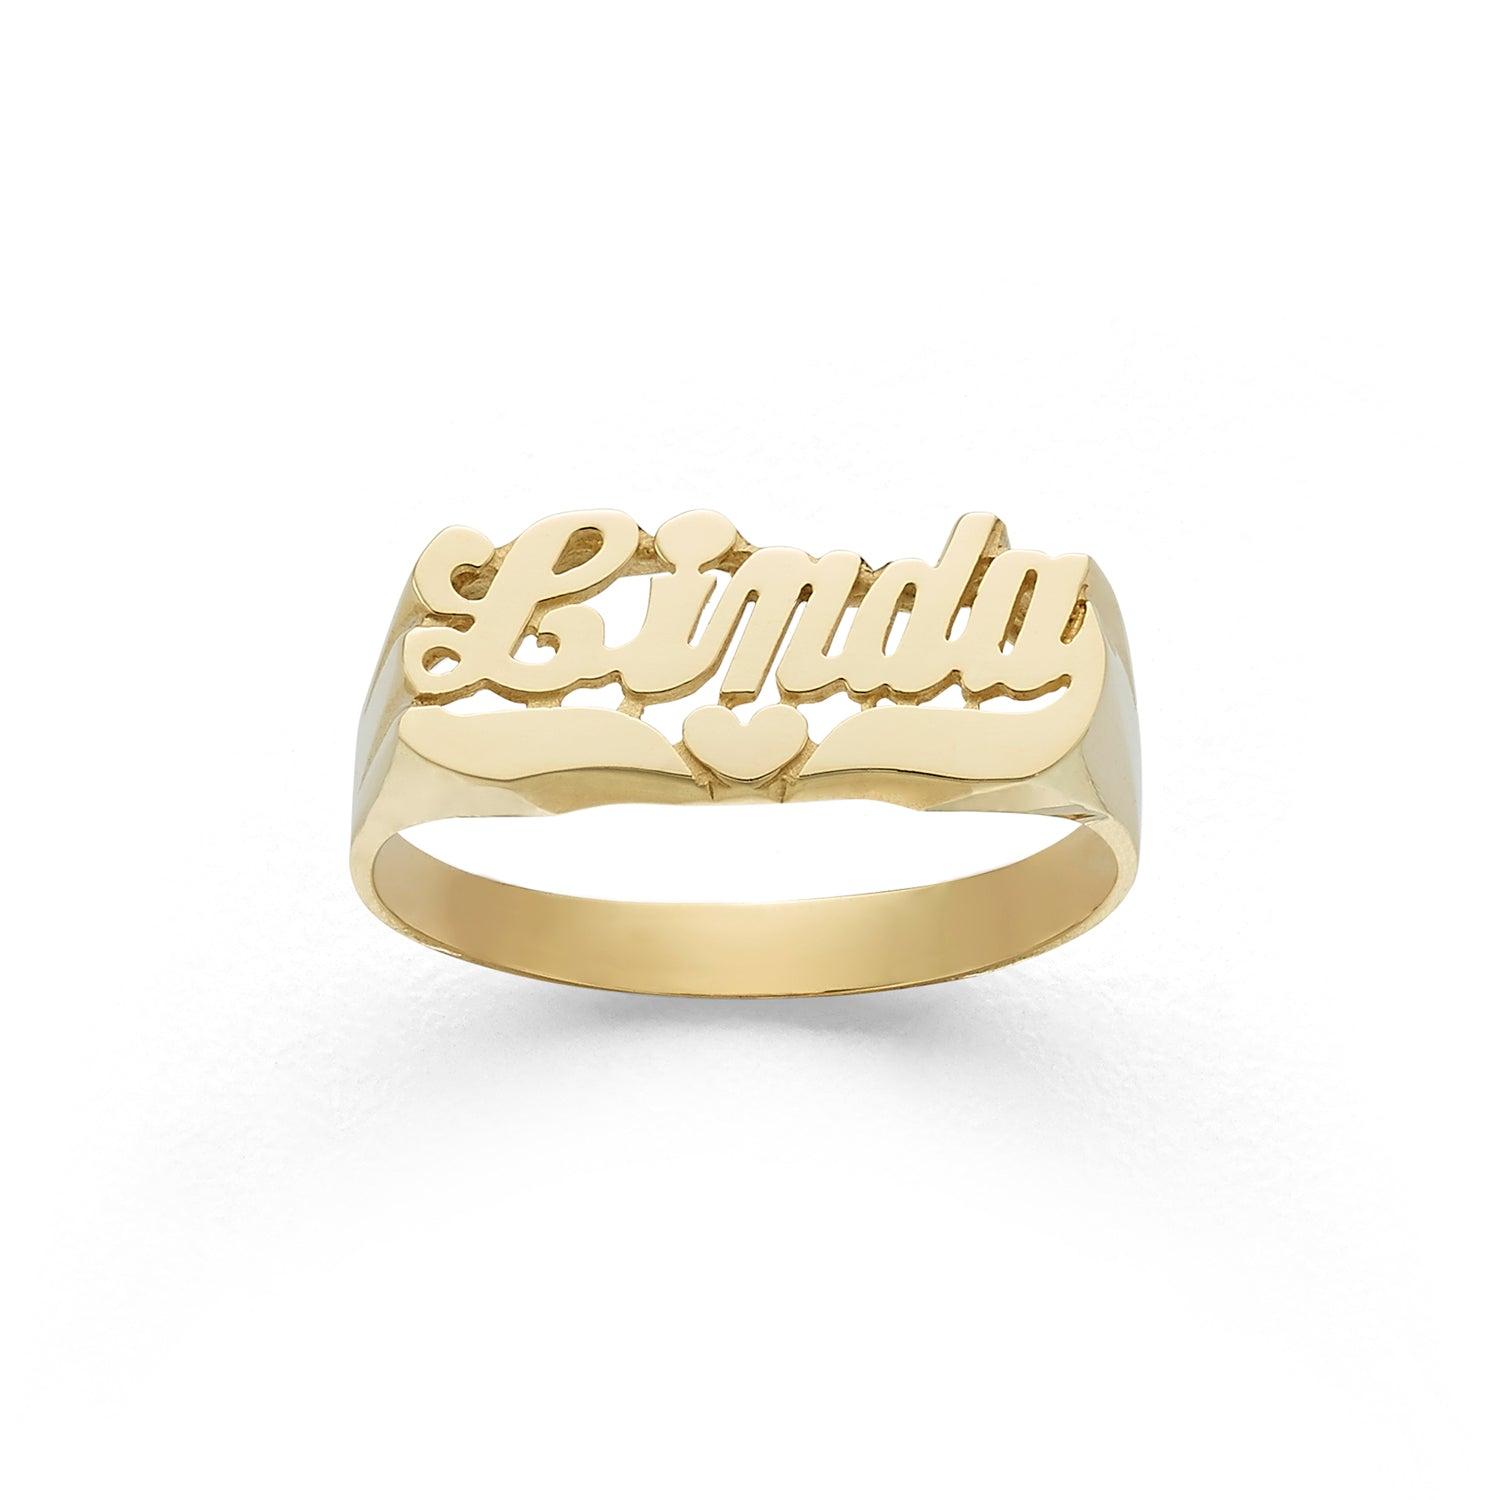 NAME RING PERSONALIZED 10K Rose Gold